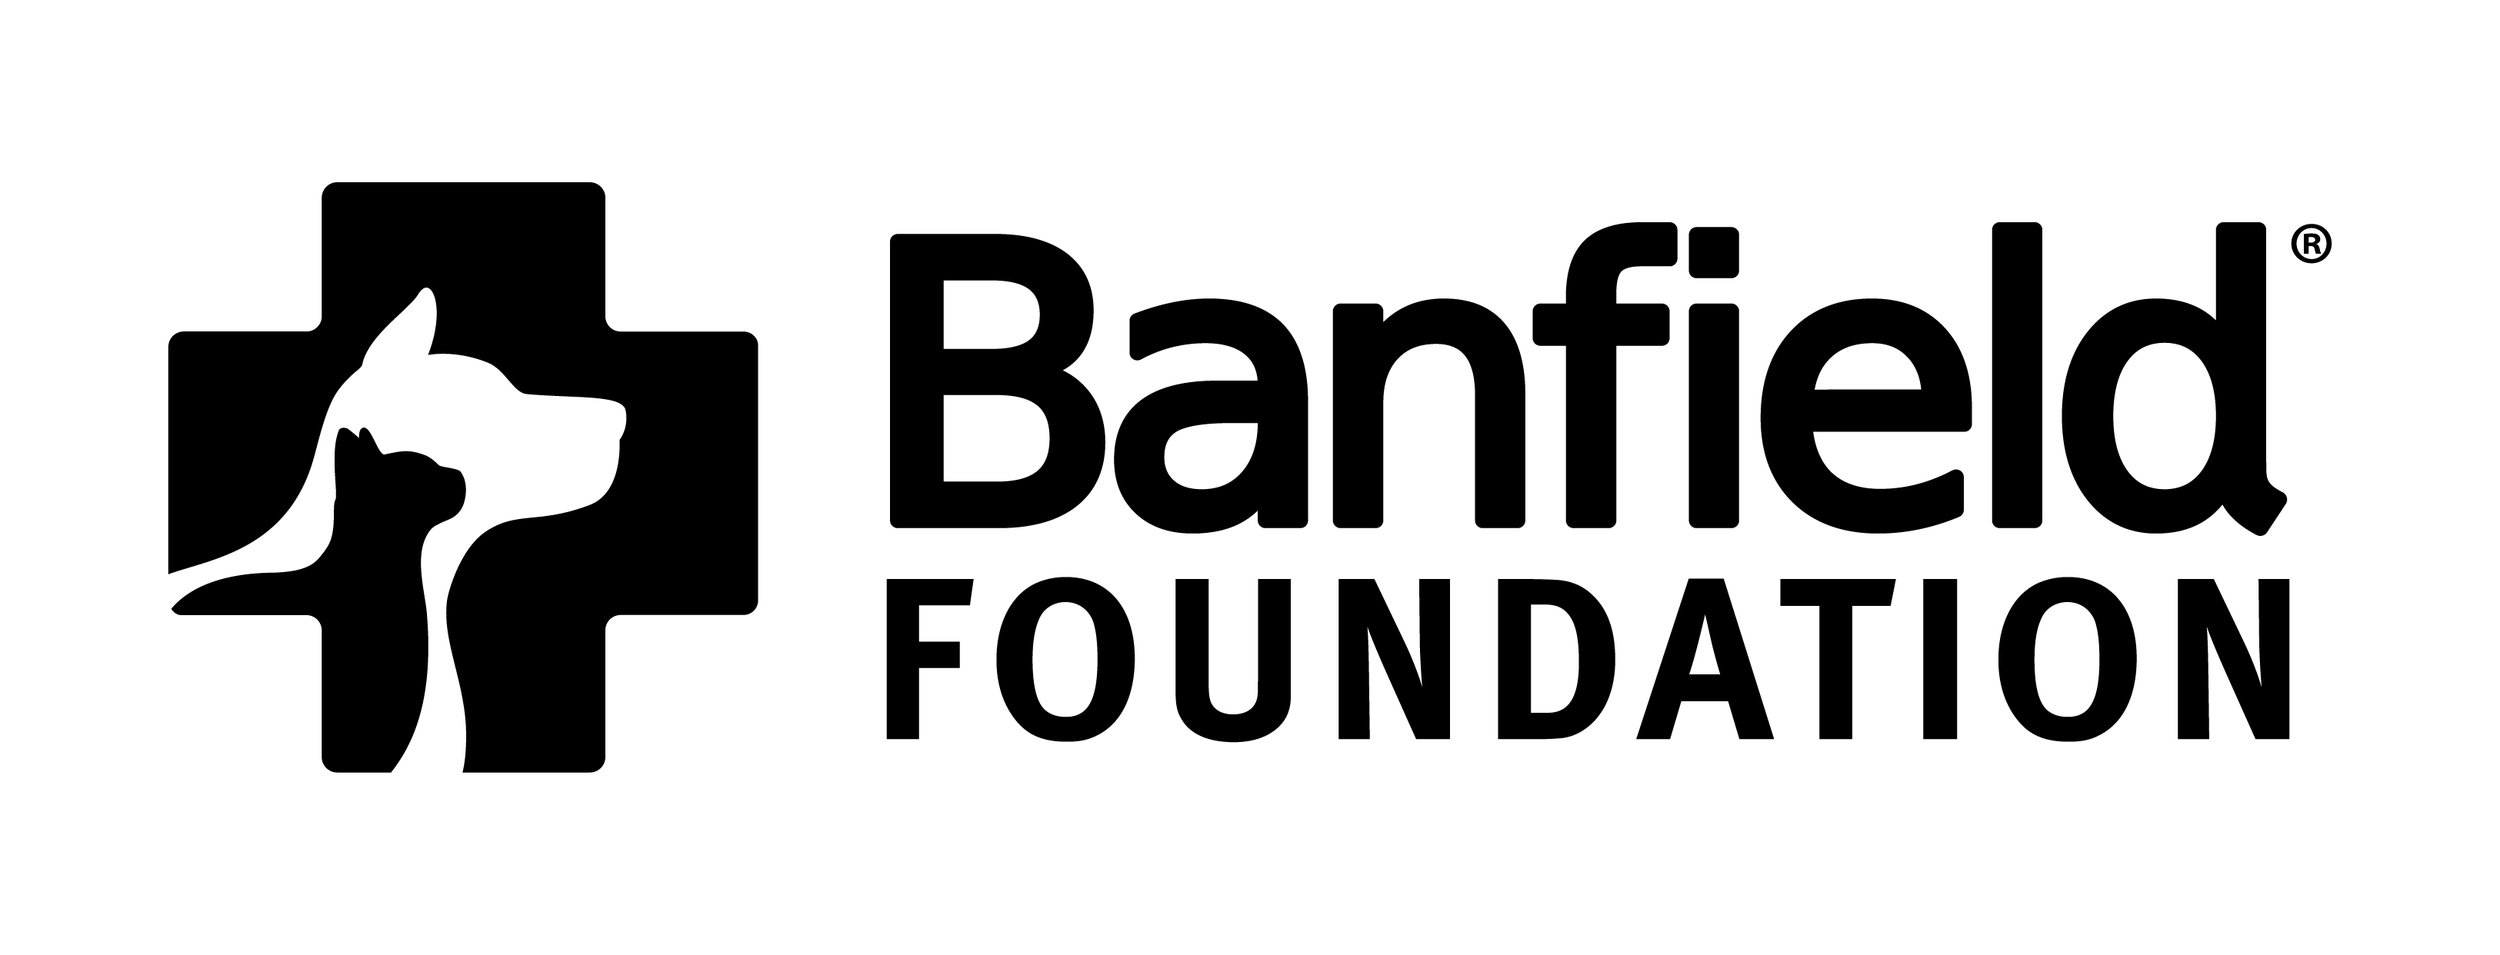 Banfield_Foundation_Black.jpg